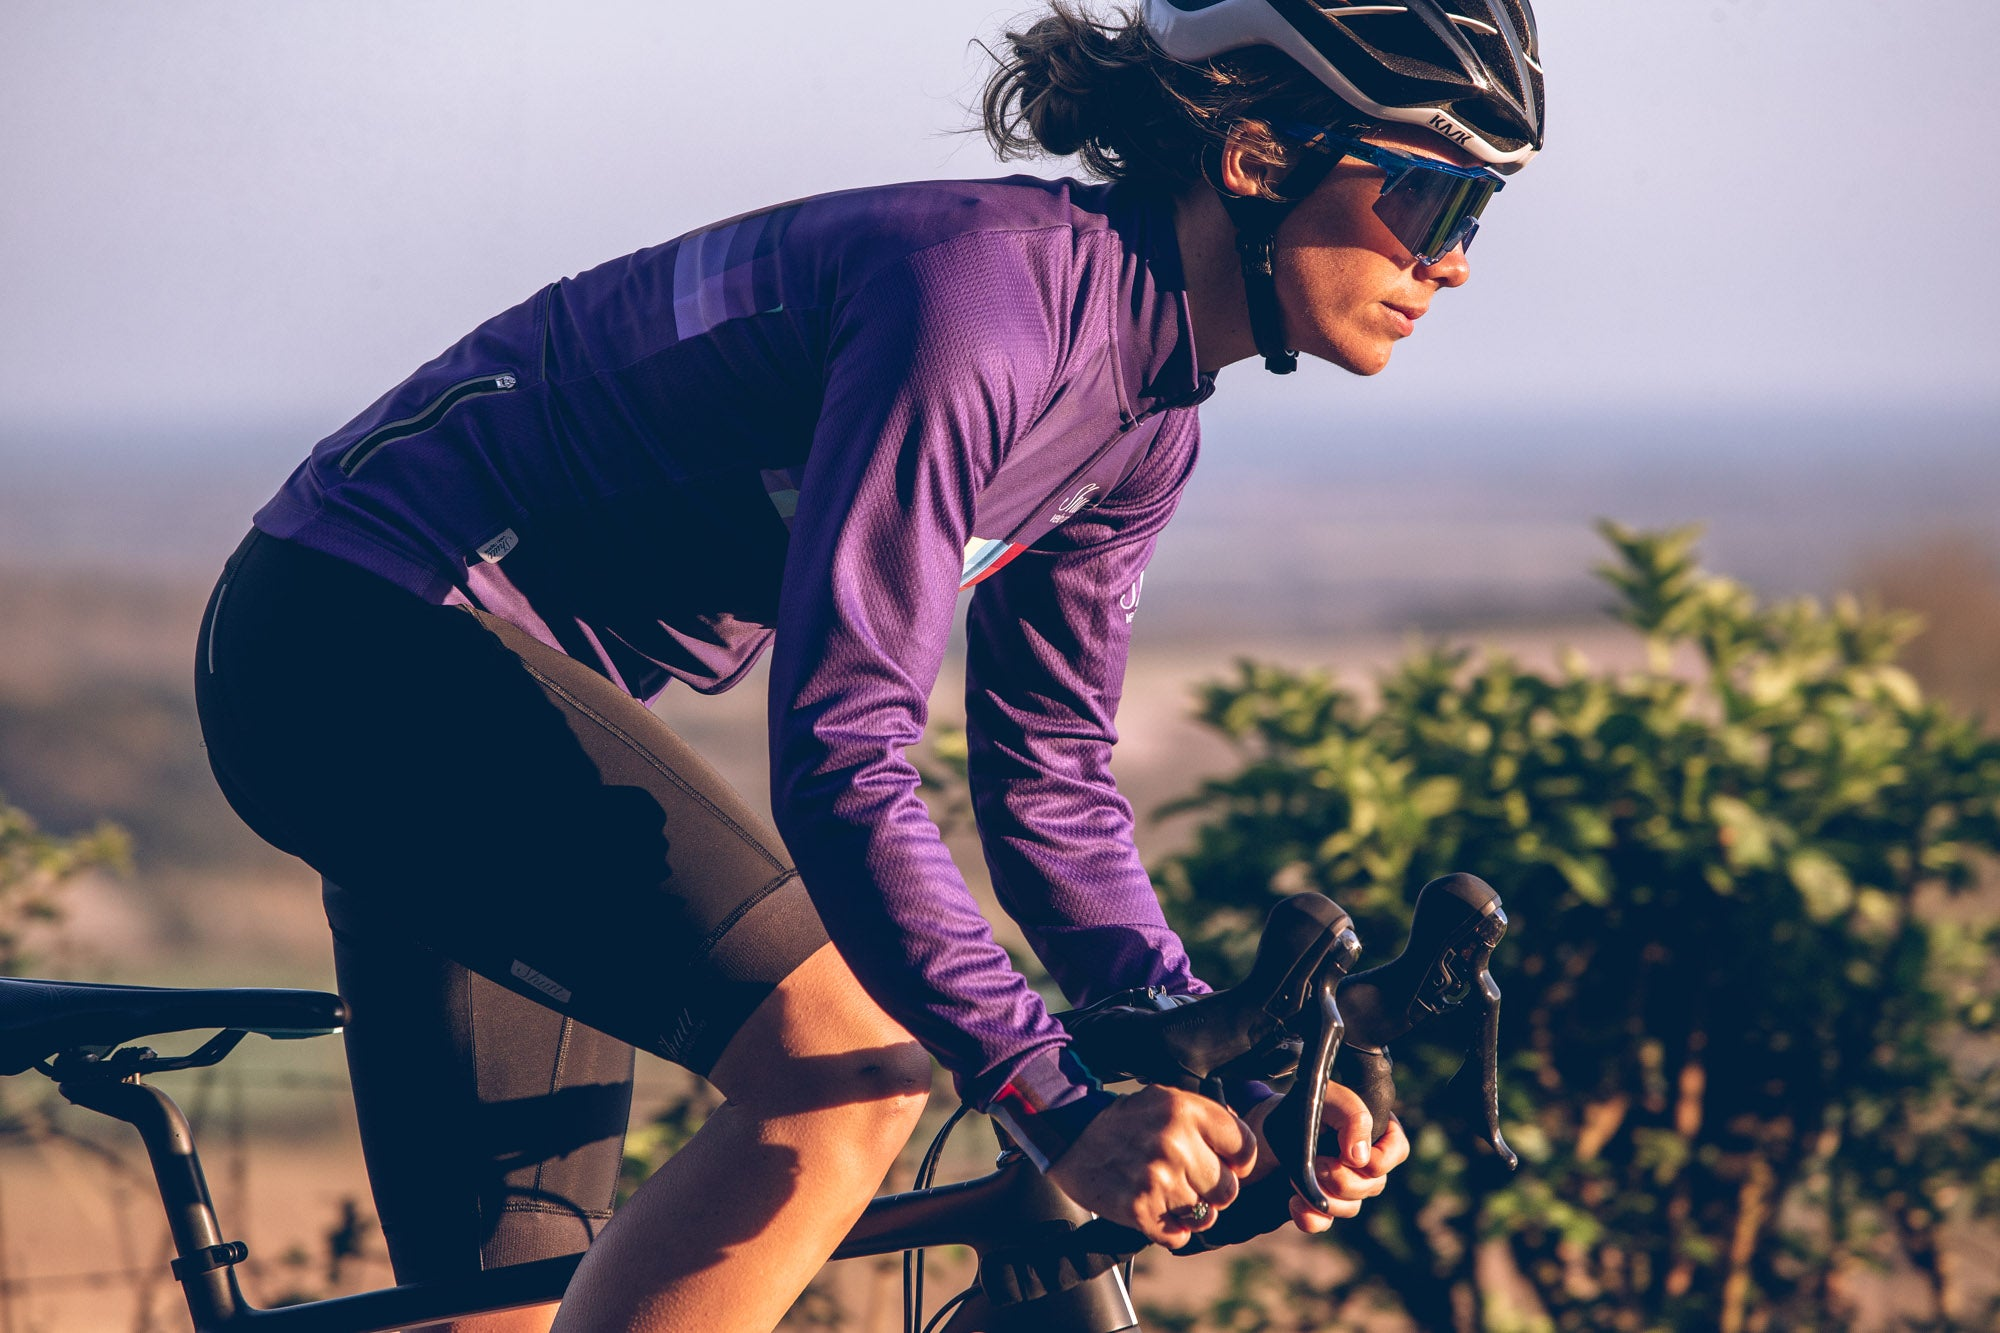 Women's Cycling Kit